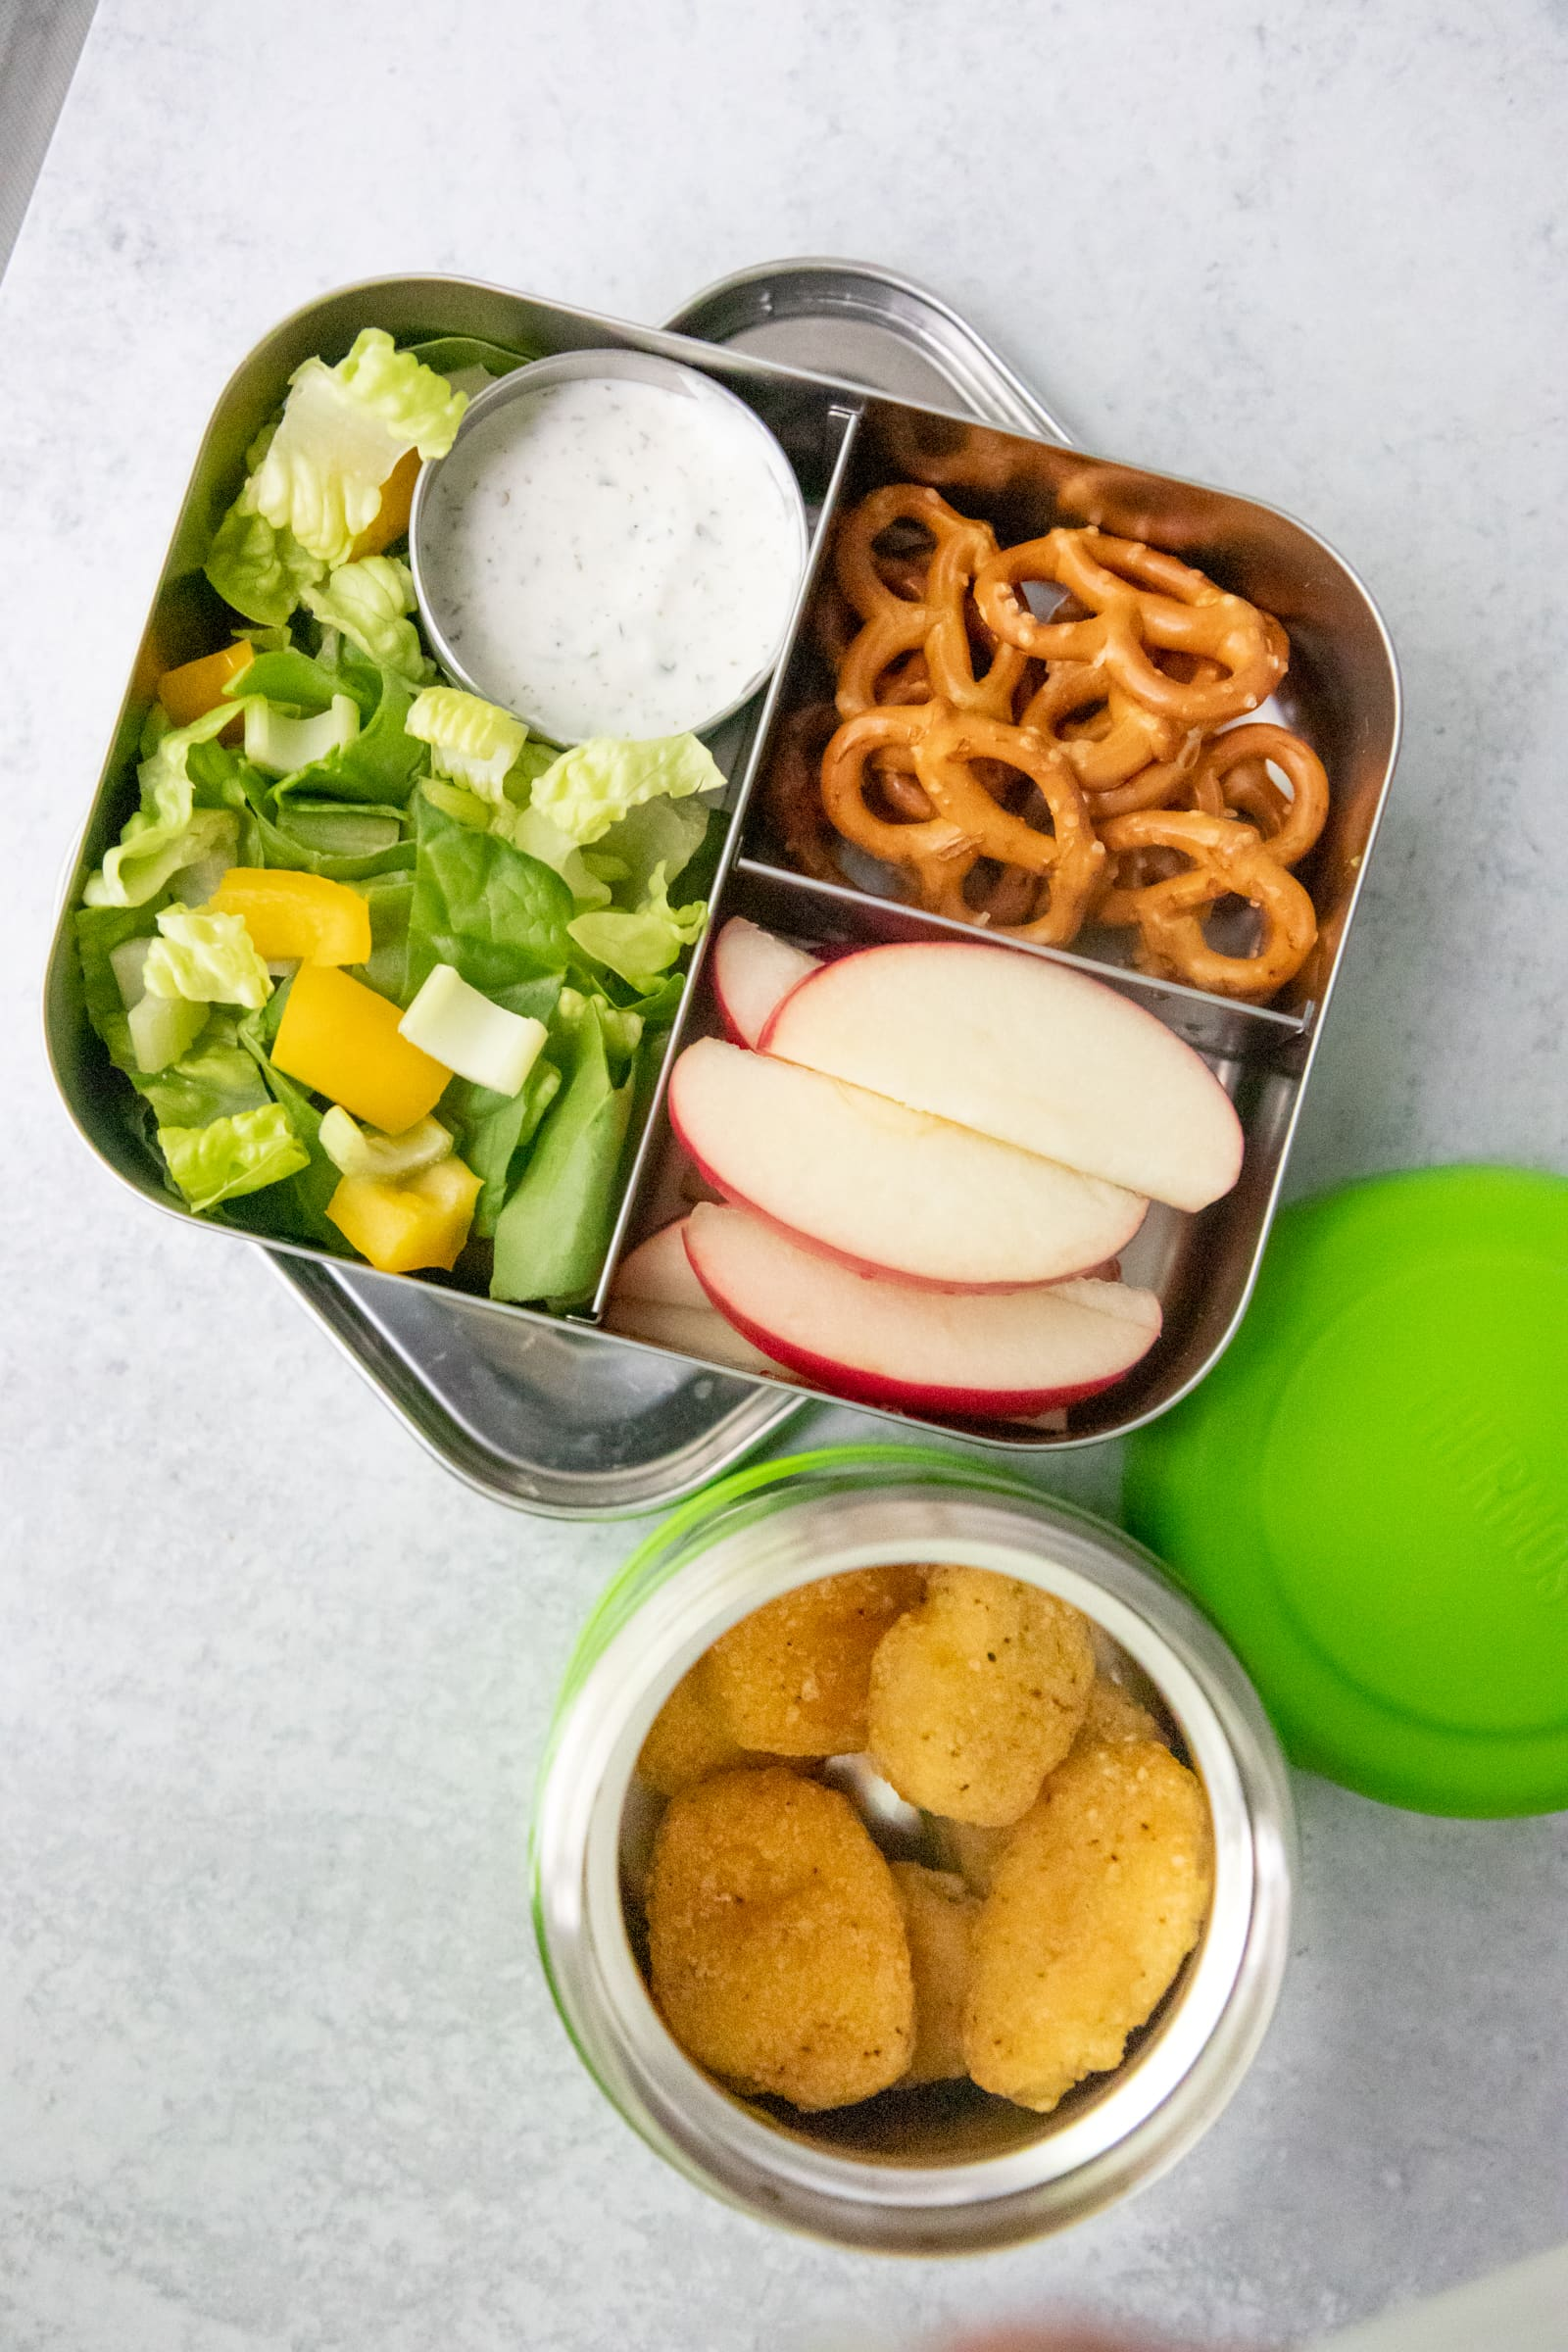 A zero-waste packed lunch consisting of chicken nuggets in a Thermos, next to a lunch box filled with salad, pretzels, and apple slices